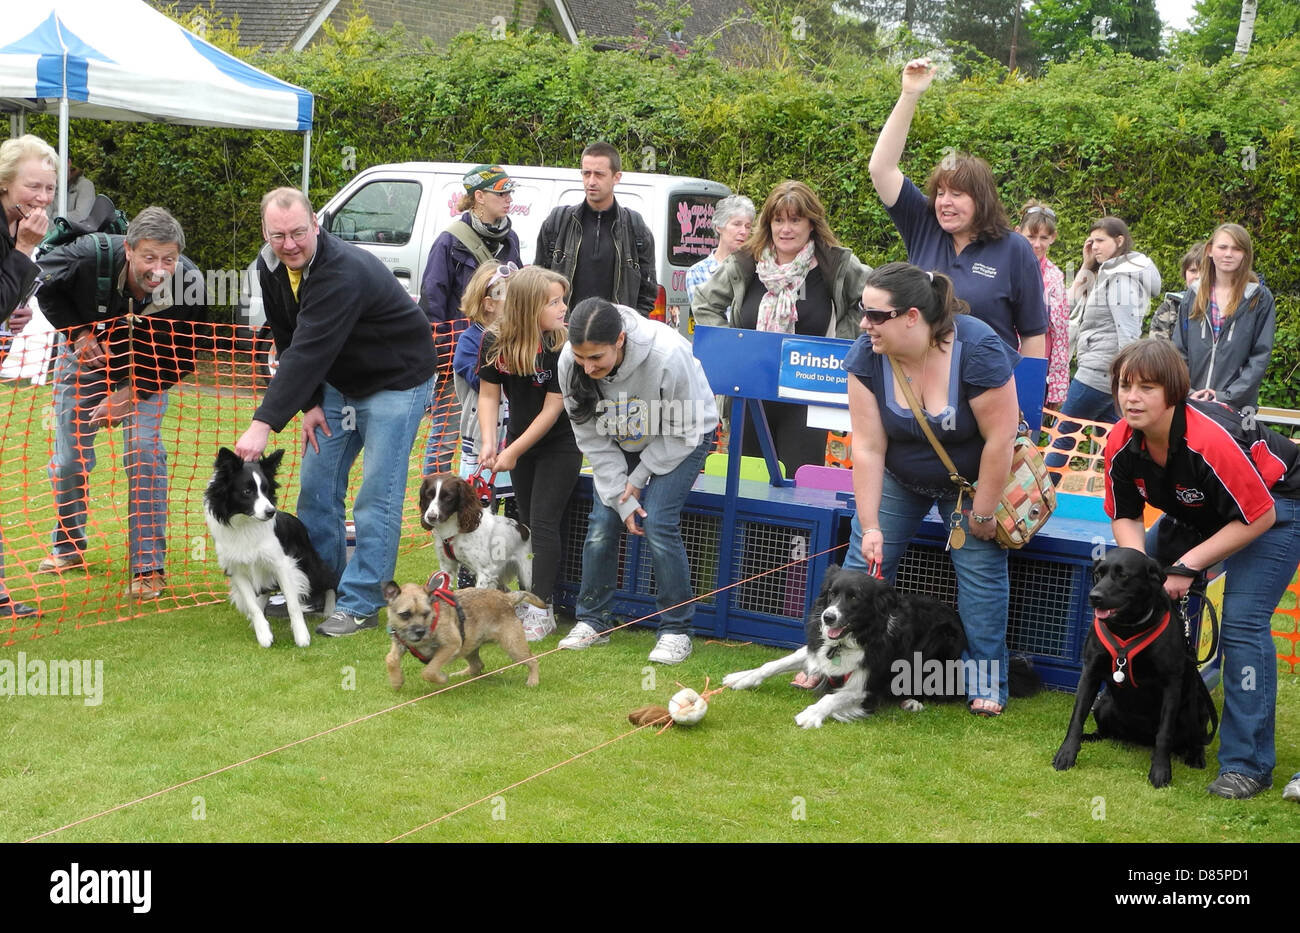 The start of a dog terrier race at a country fair - this was at Brinsbury Agricultural College open day in Sussex - Stock Image